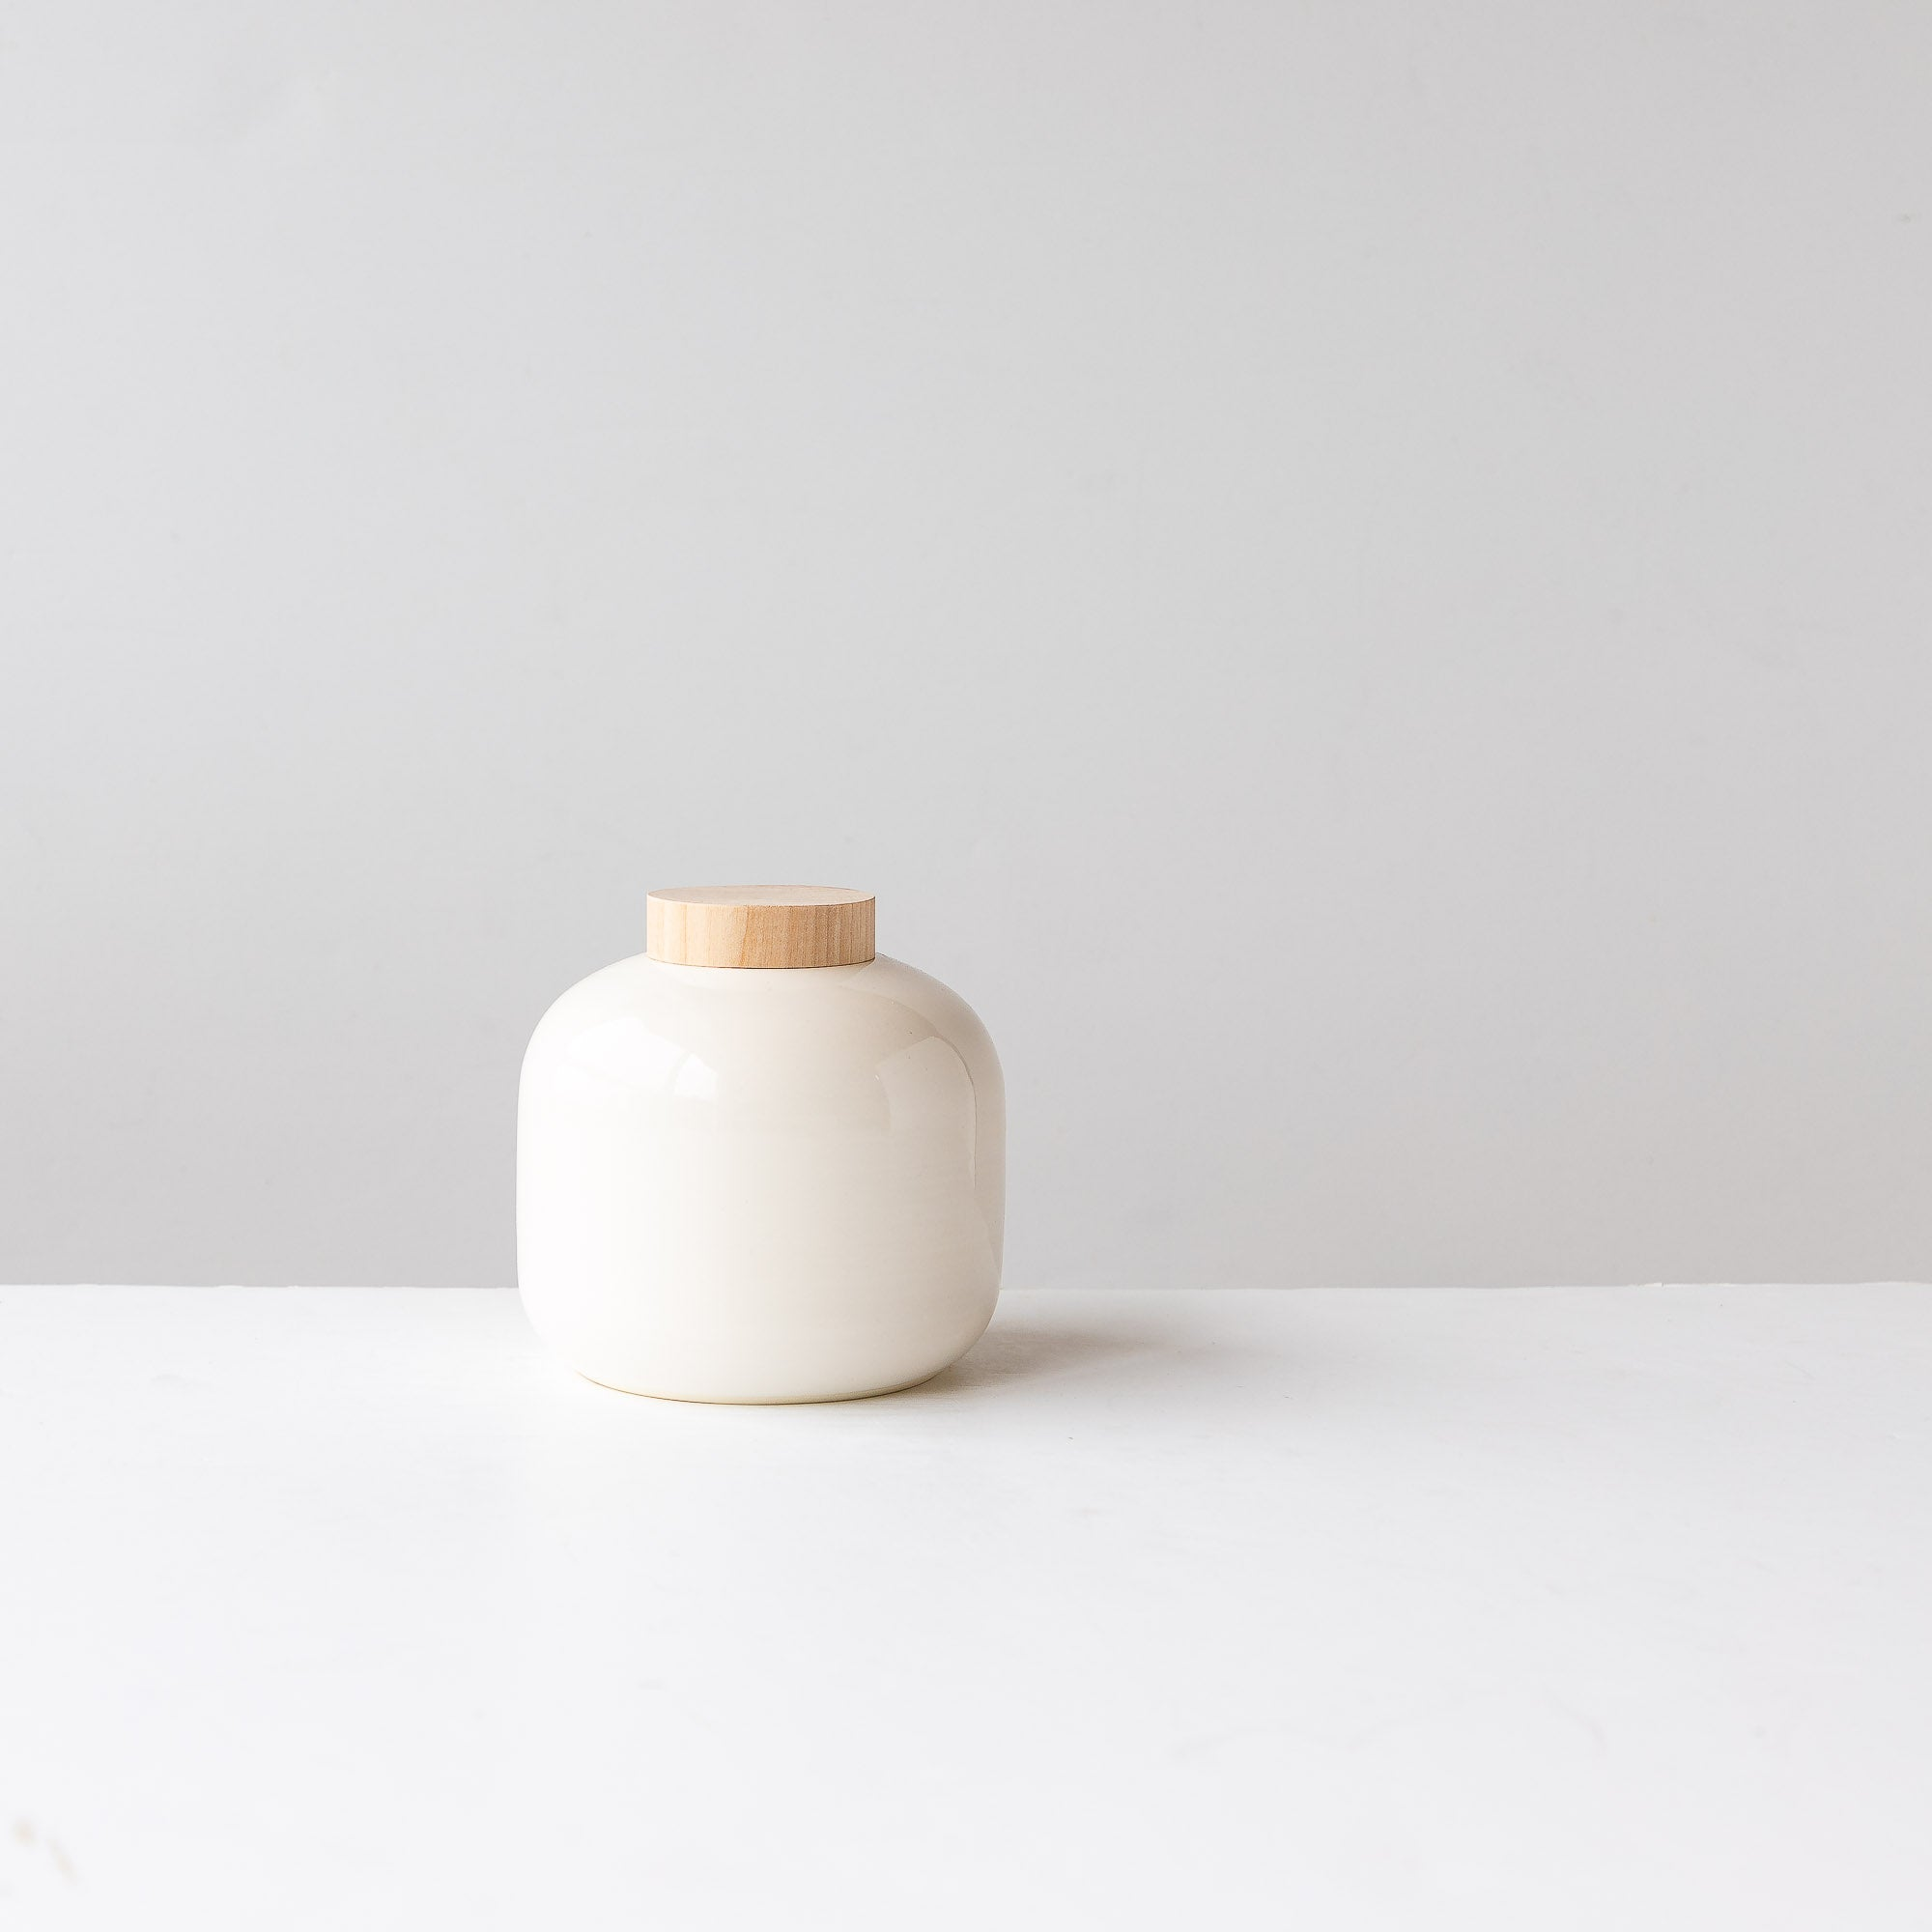 Handmade Small White Pot with Wood Lid - Sold by Chic & Basta